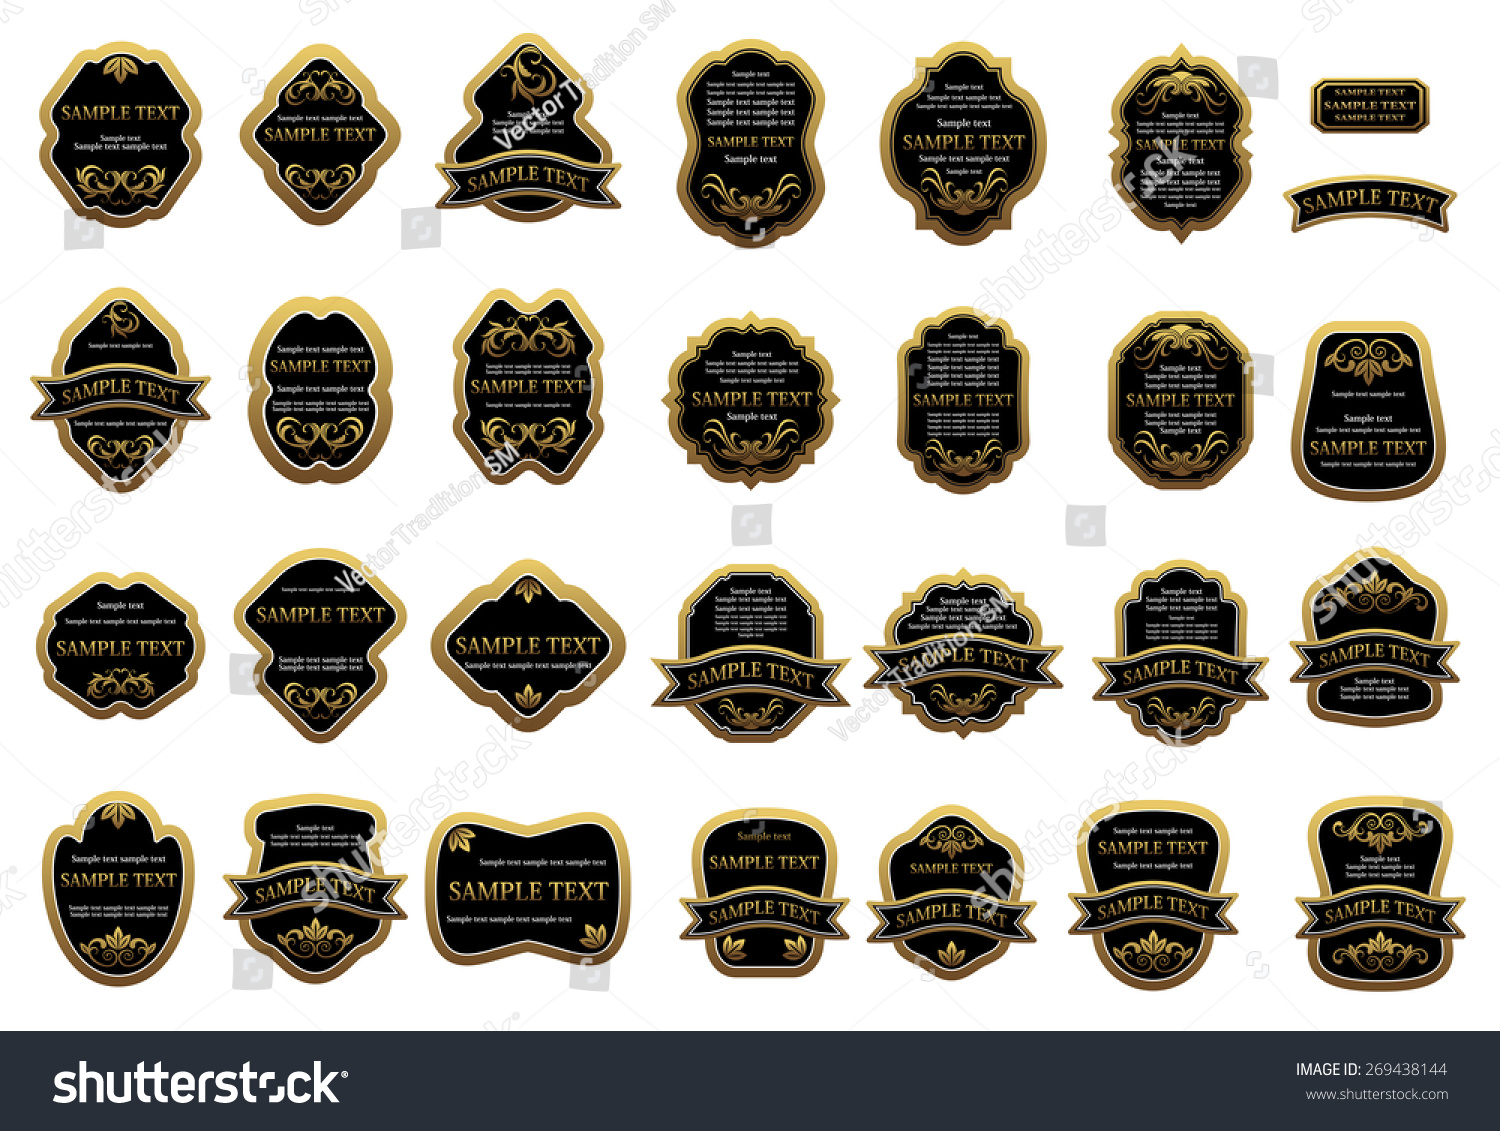 vintage black with golden frame label templates decorated floral ornament and ribbon banners isolated on white